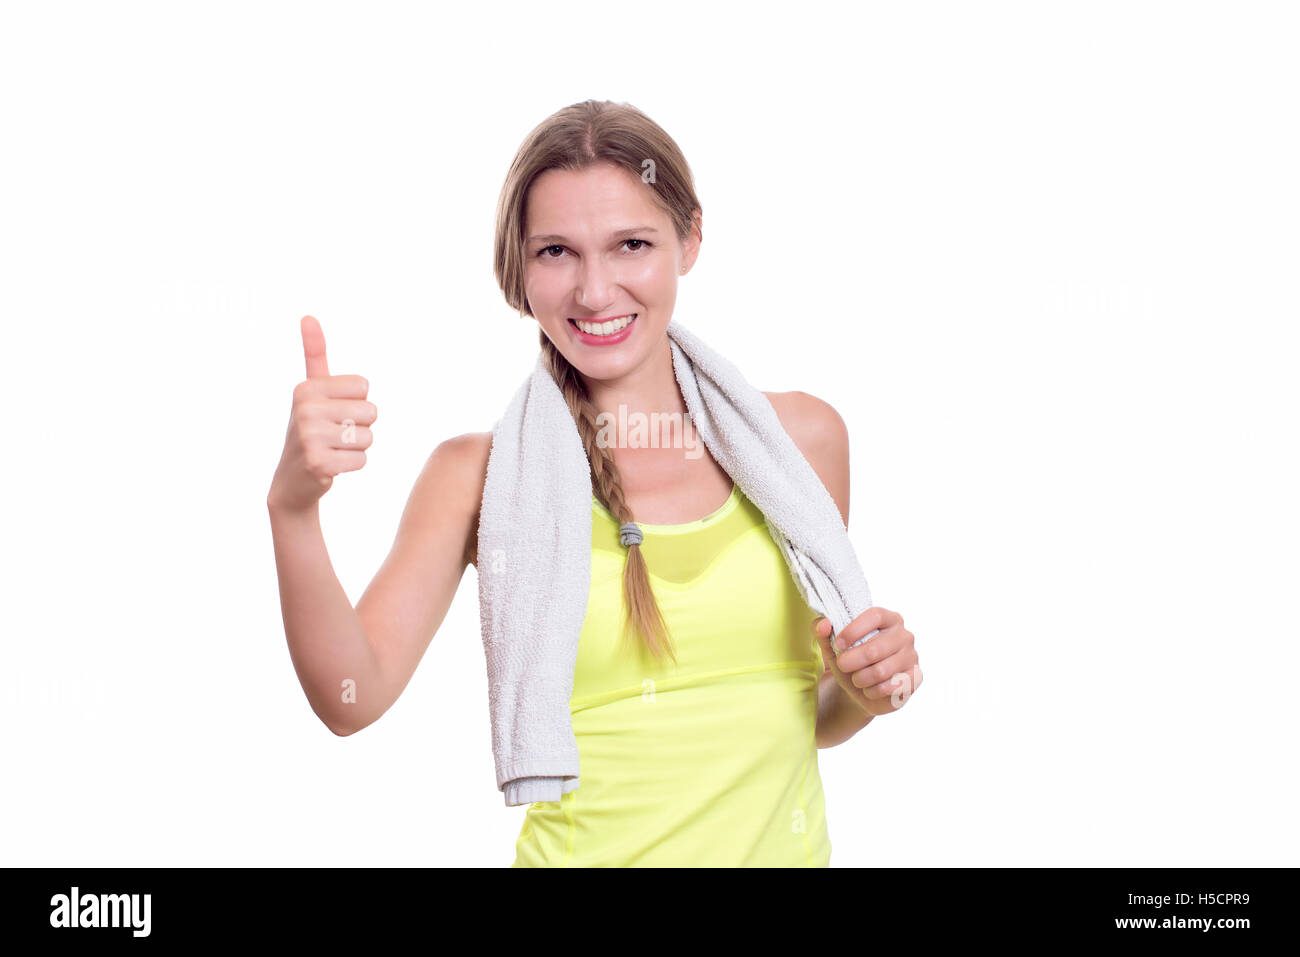 Smiling happy female fitness model looking at camera Stock Photo